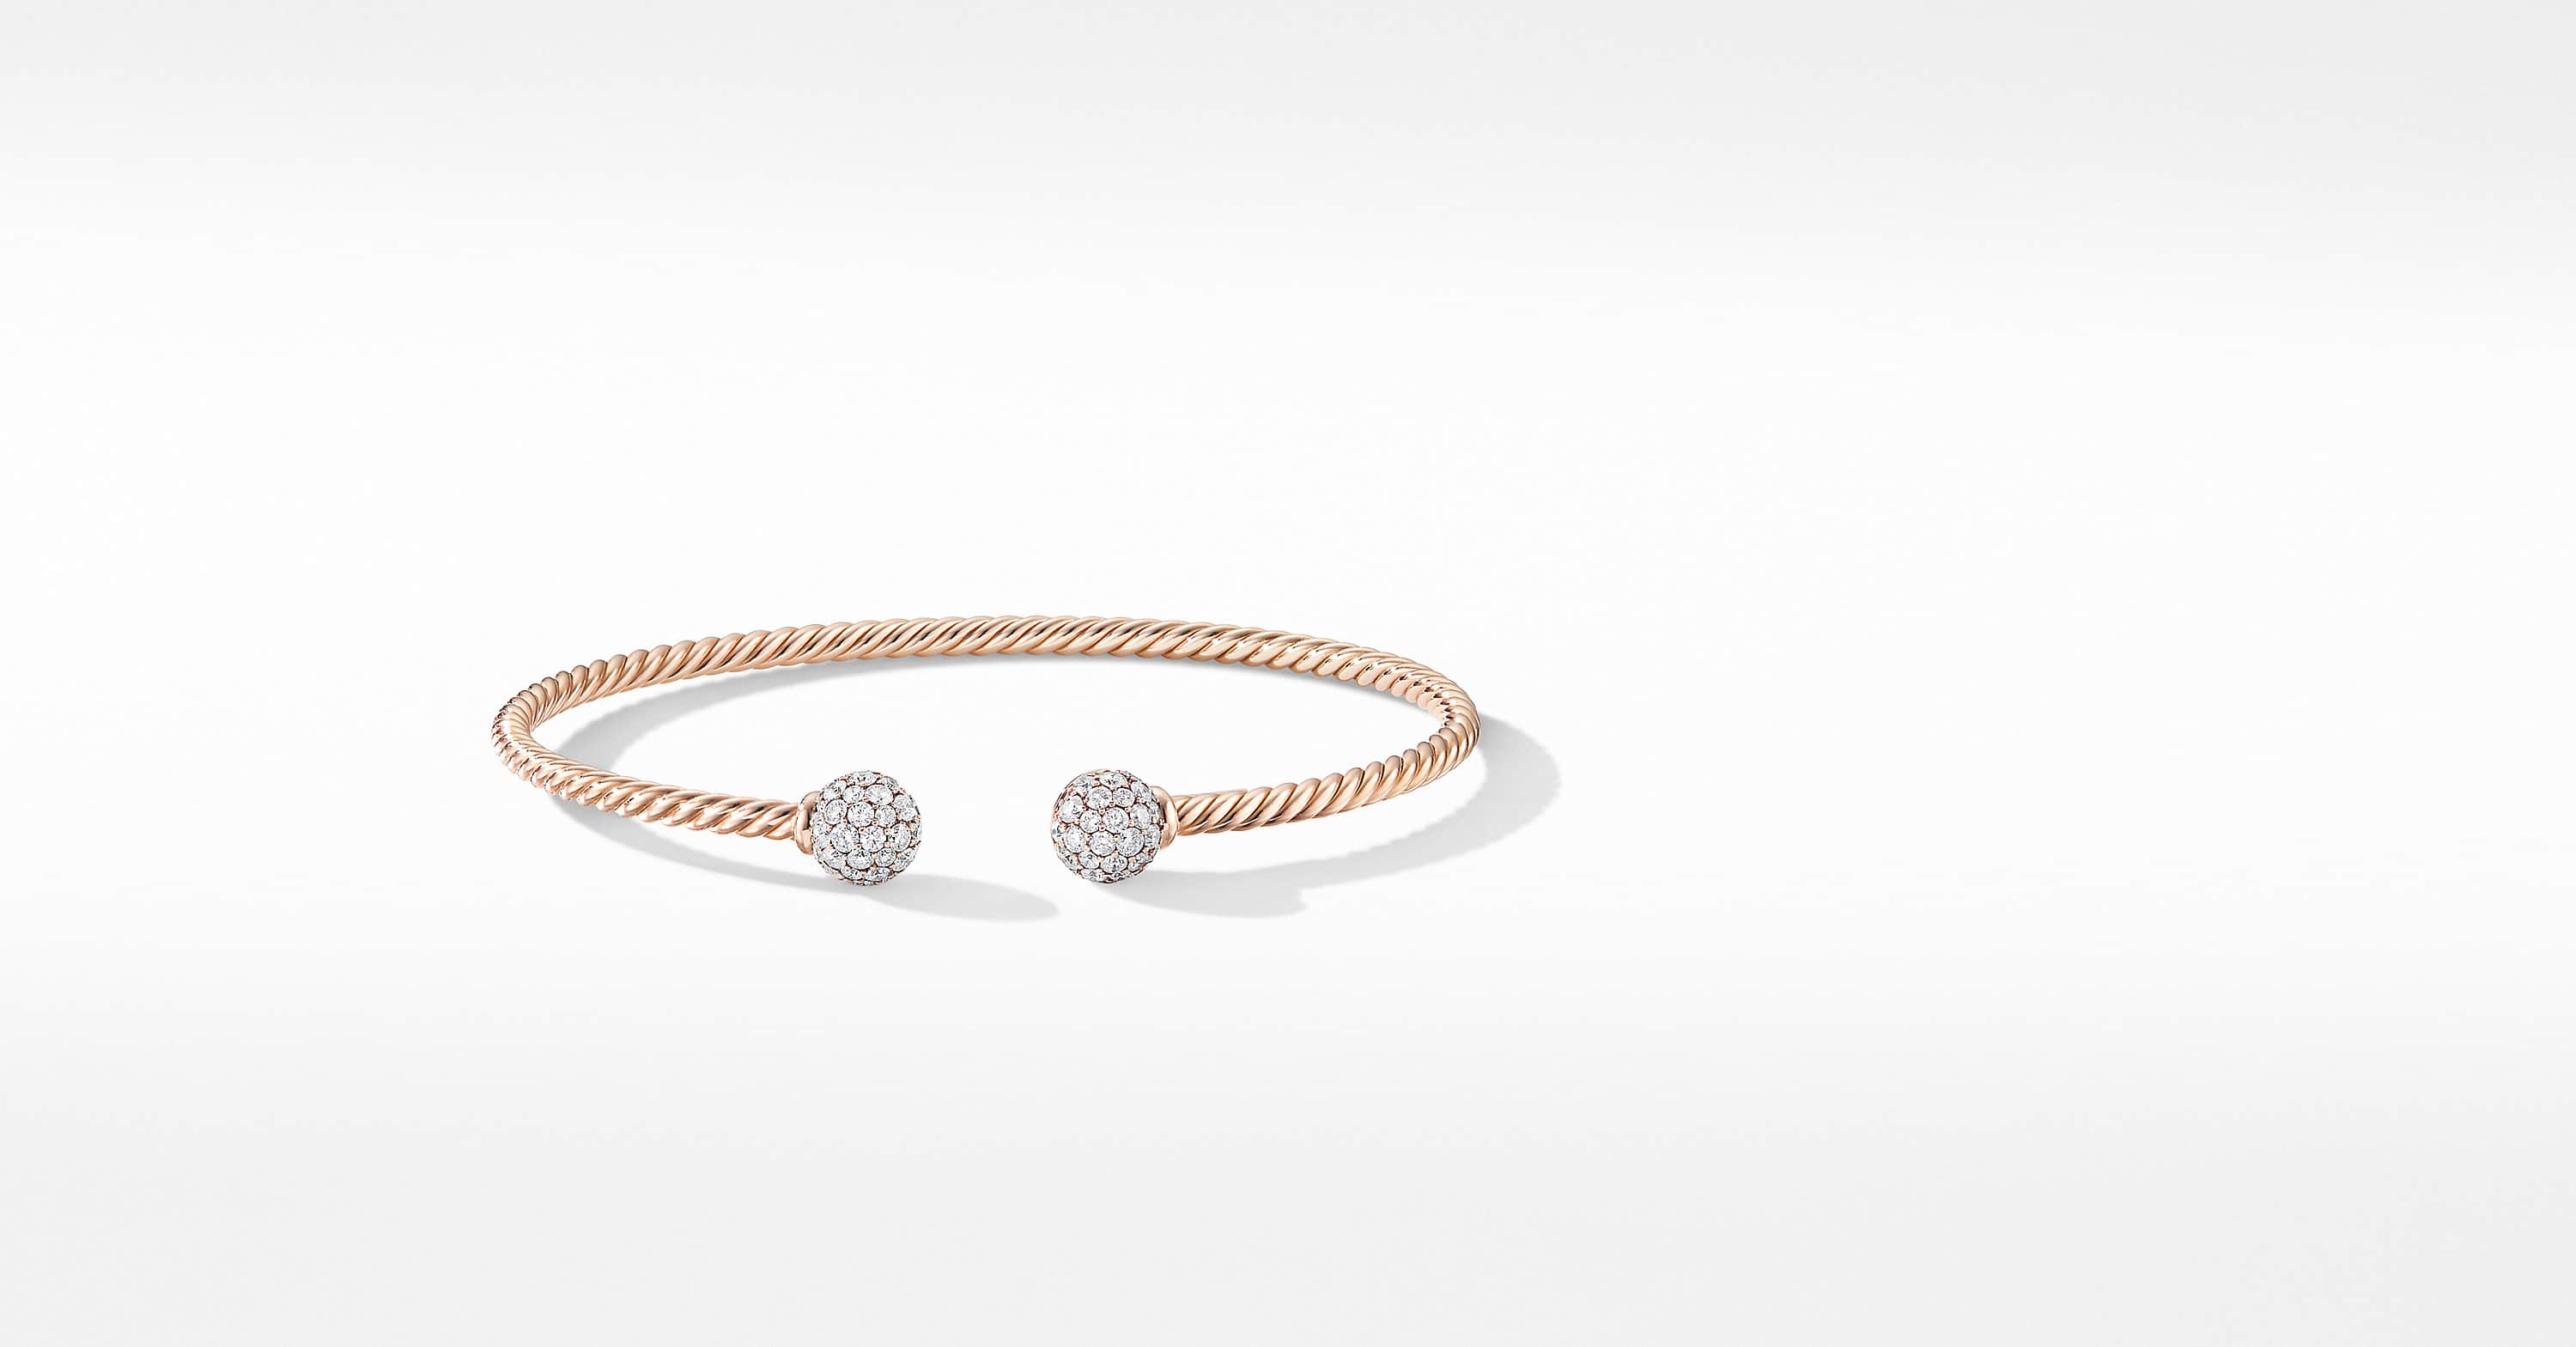 Bracelet Solari en or rose 18K avec diamants